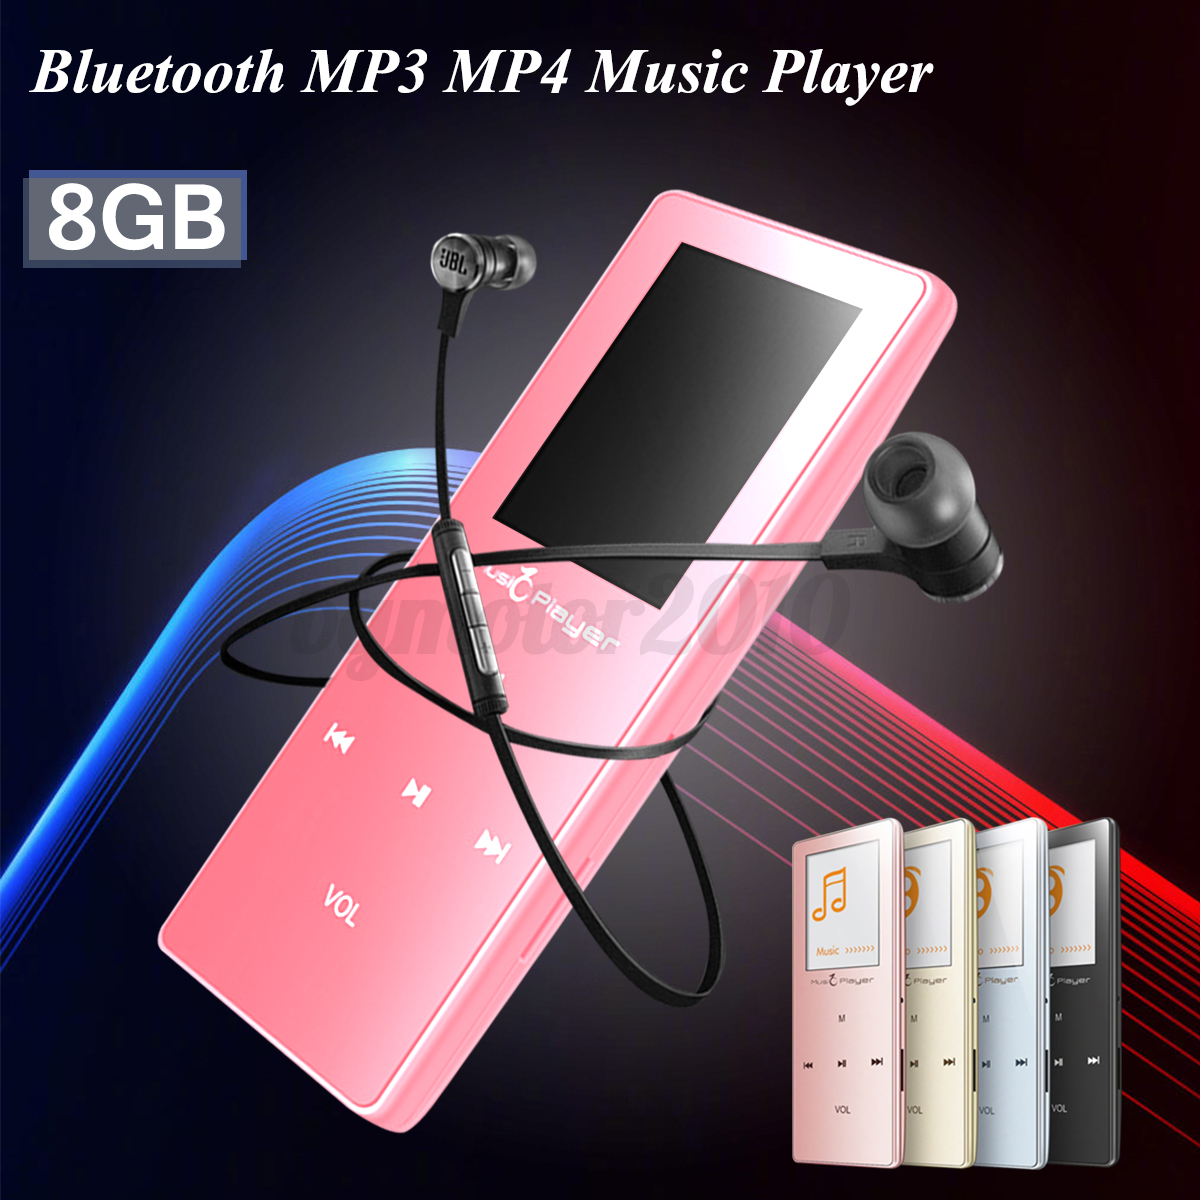 Details about Portable 8GB Bluetooth MP3 Music Player Running Sports MP4 FM  Radio Pedometer